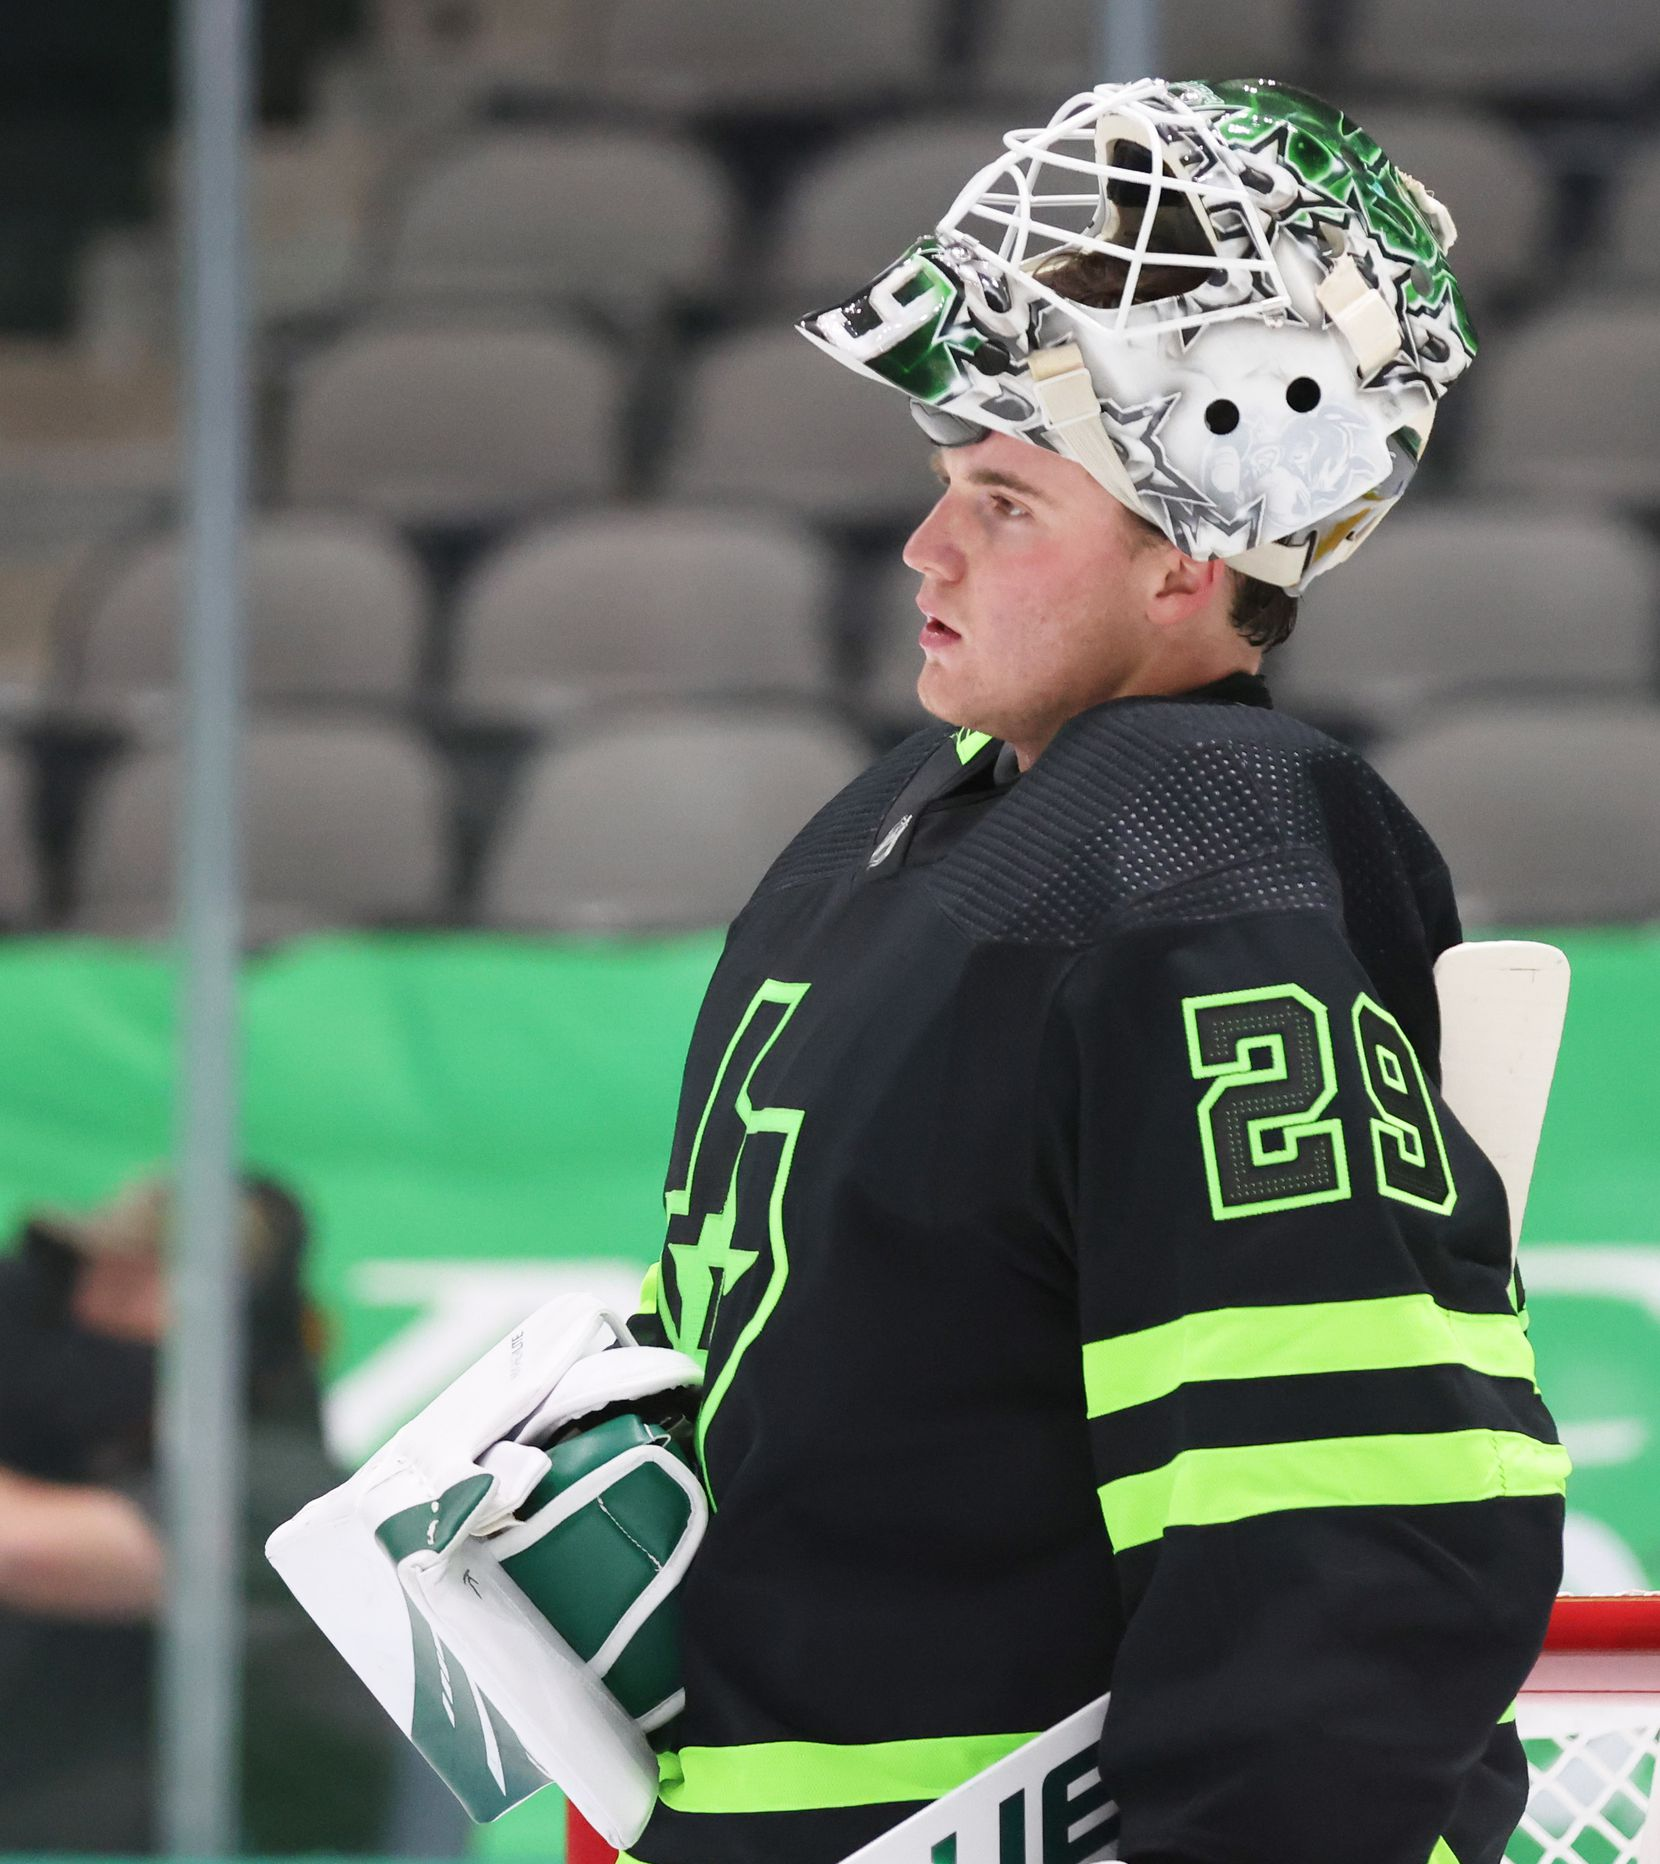 Dallas Stars goaltender Jake Oettinger (29) during a break in play against the Detroit Red Wings in the second period of play at American Airlines Center on Thursday, January 28, 2021in Dallas. (Vernon Bryant/The Dallas Morning News)